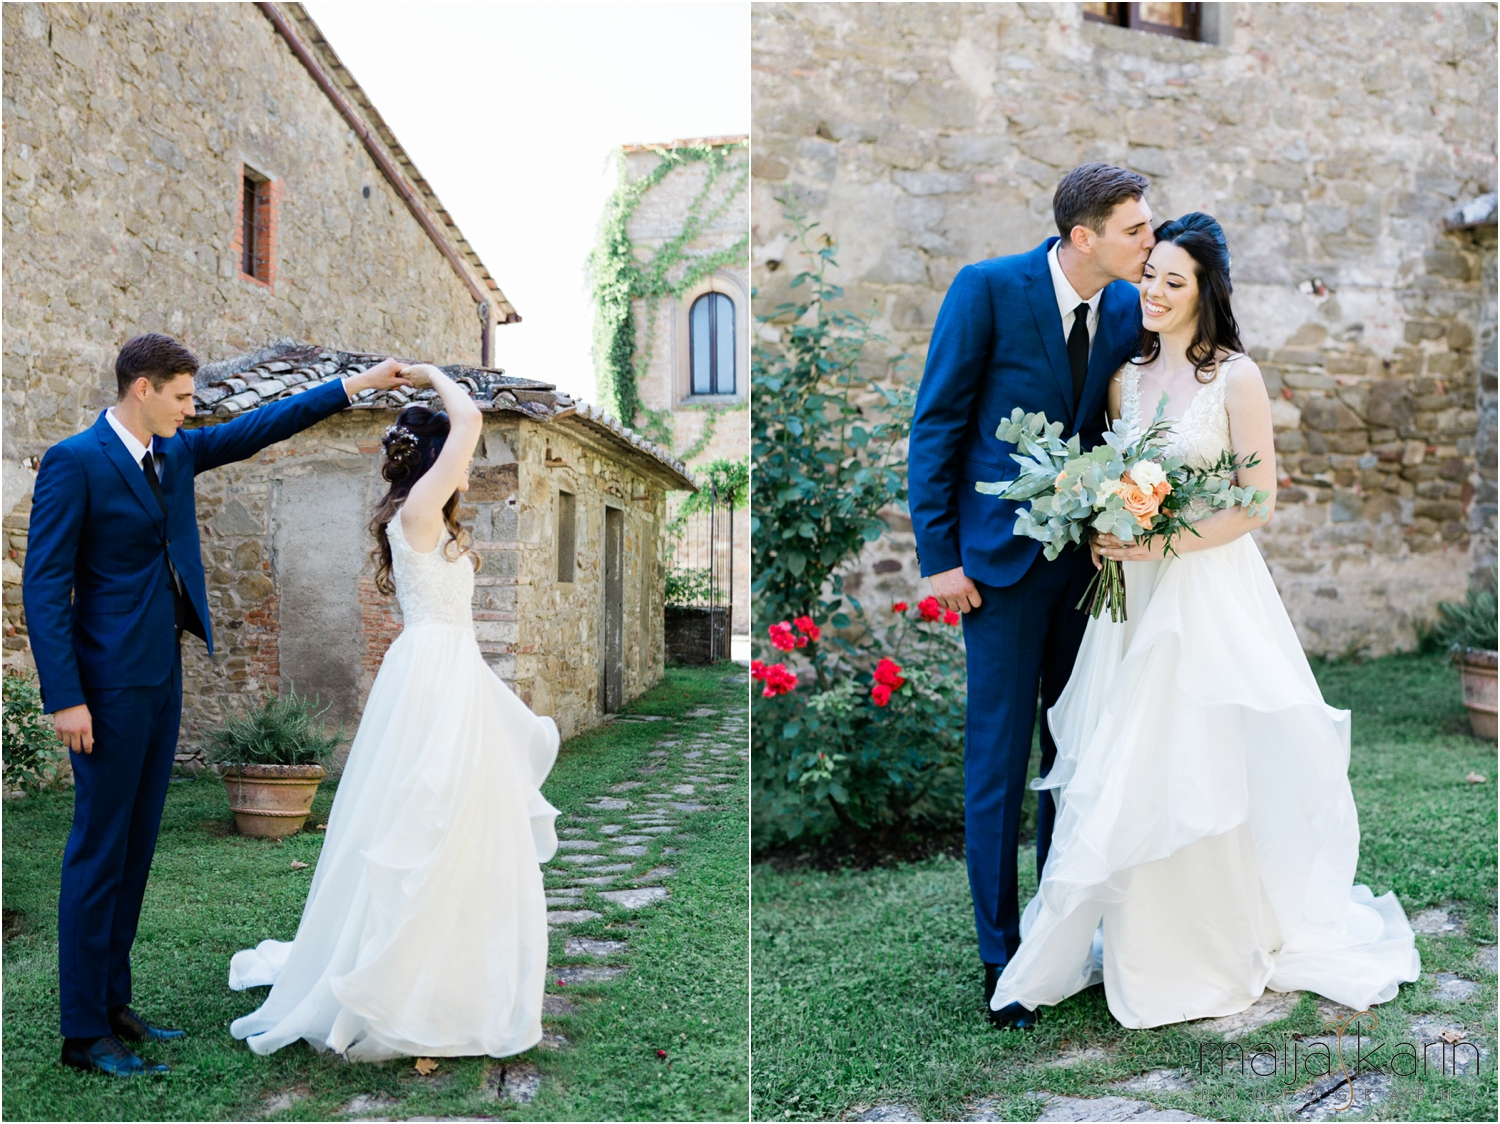 Castelvecchi-Tuscany-Wedding-Maija-Karin-Photography_0020.jpg